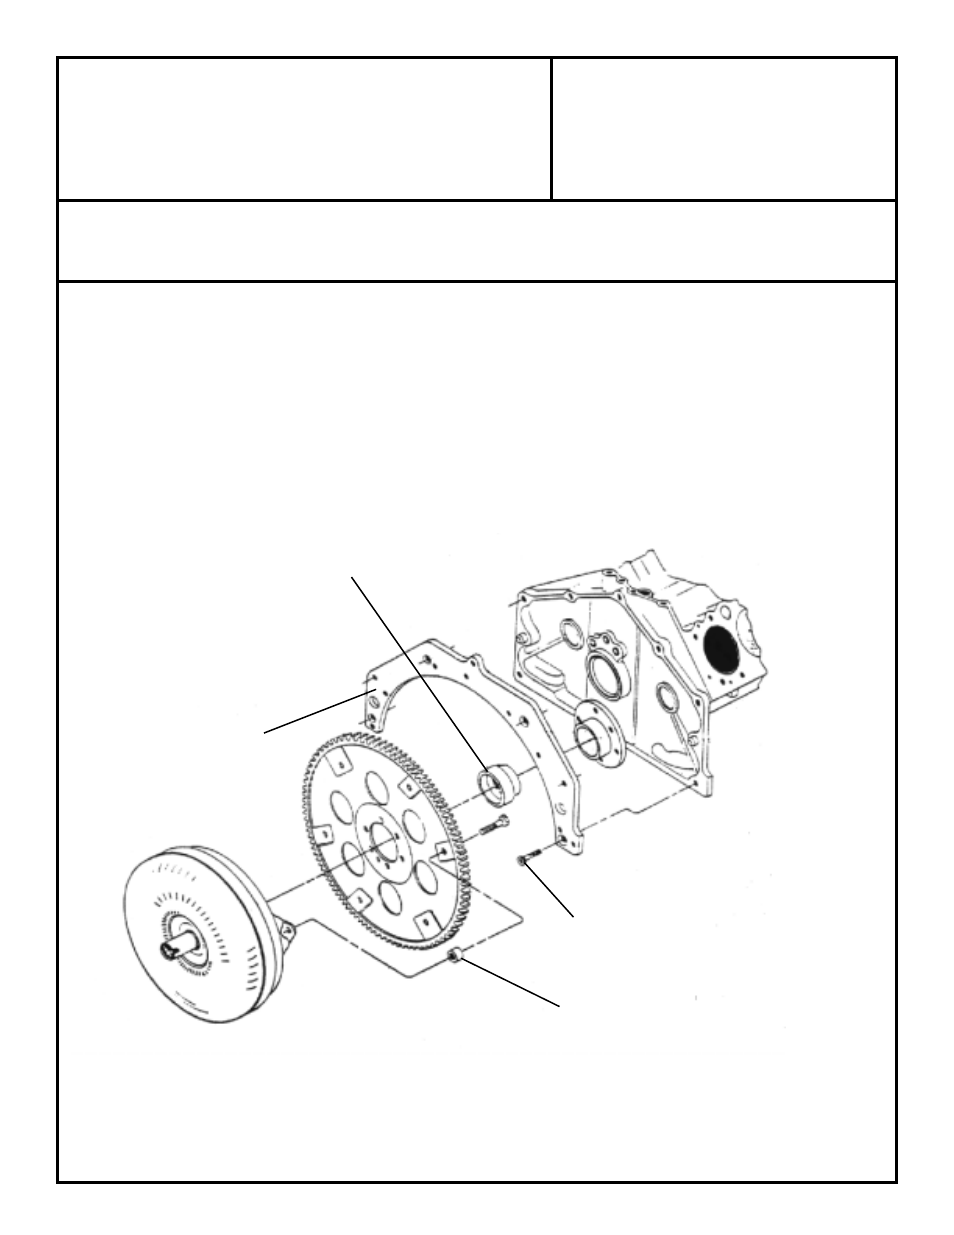 hight resolution of chevy turbo 400 diagram